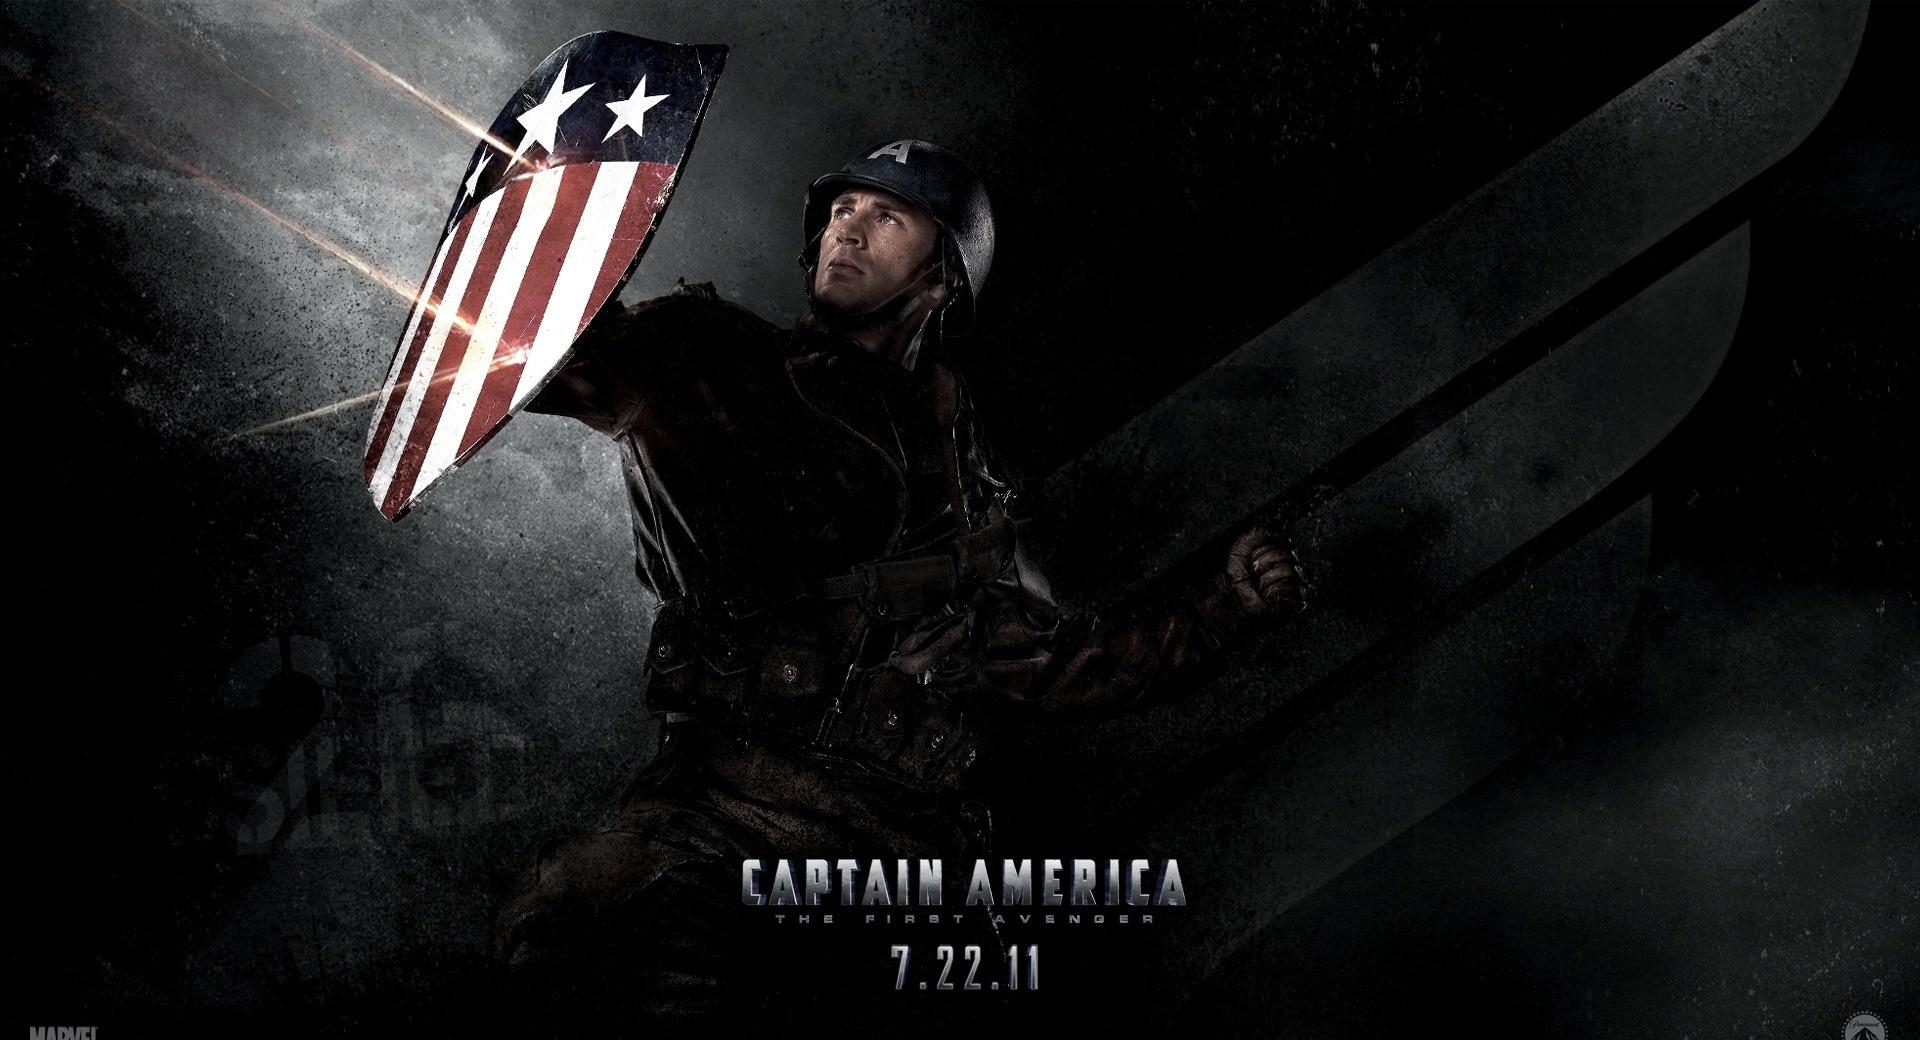 Captain America 2011 - Shield wallpapers HD quality